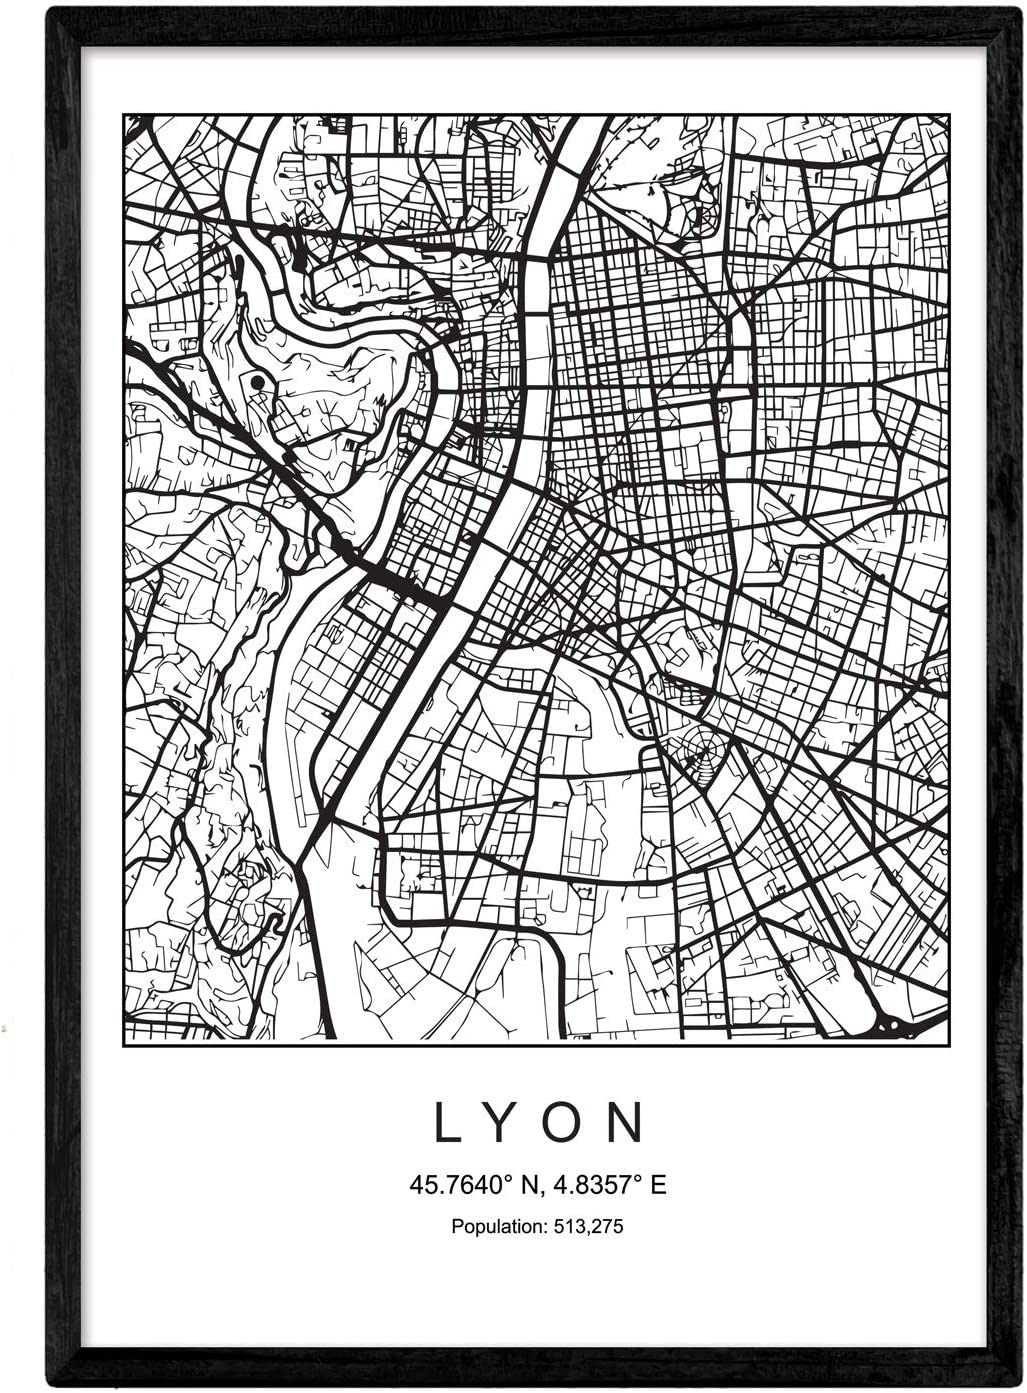 Nacnic Prints Lyon City Map Nordic Style - Set of 1 - Unframed 11x17 inch Size - 250g Paper - Beautiful Poster Painting for Home Office Living Room